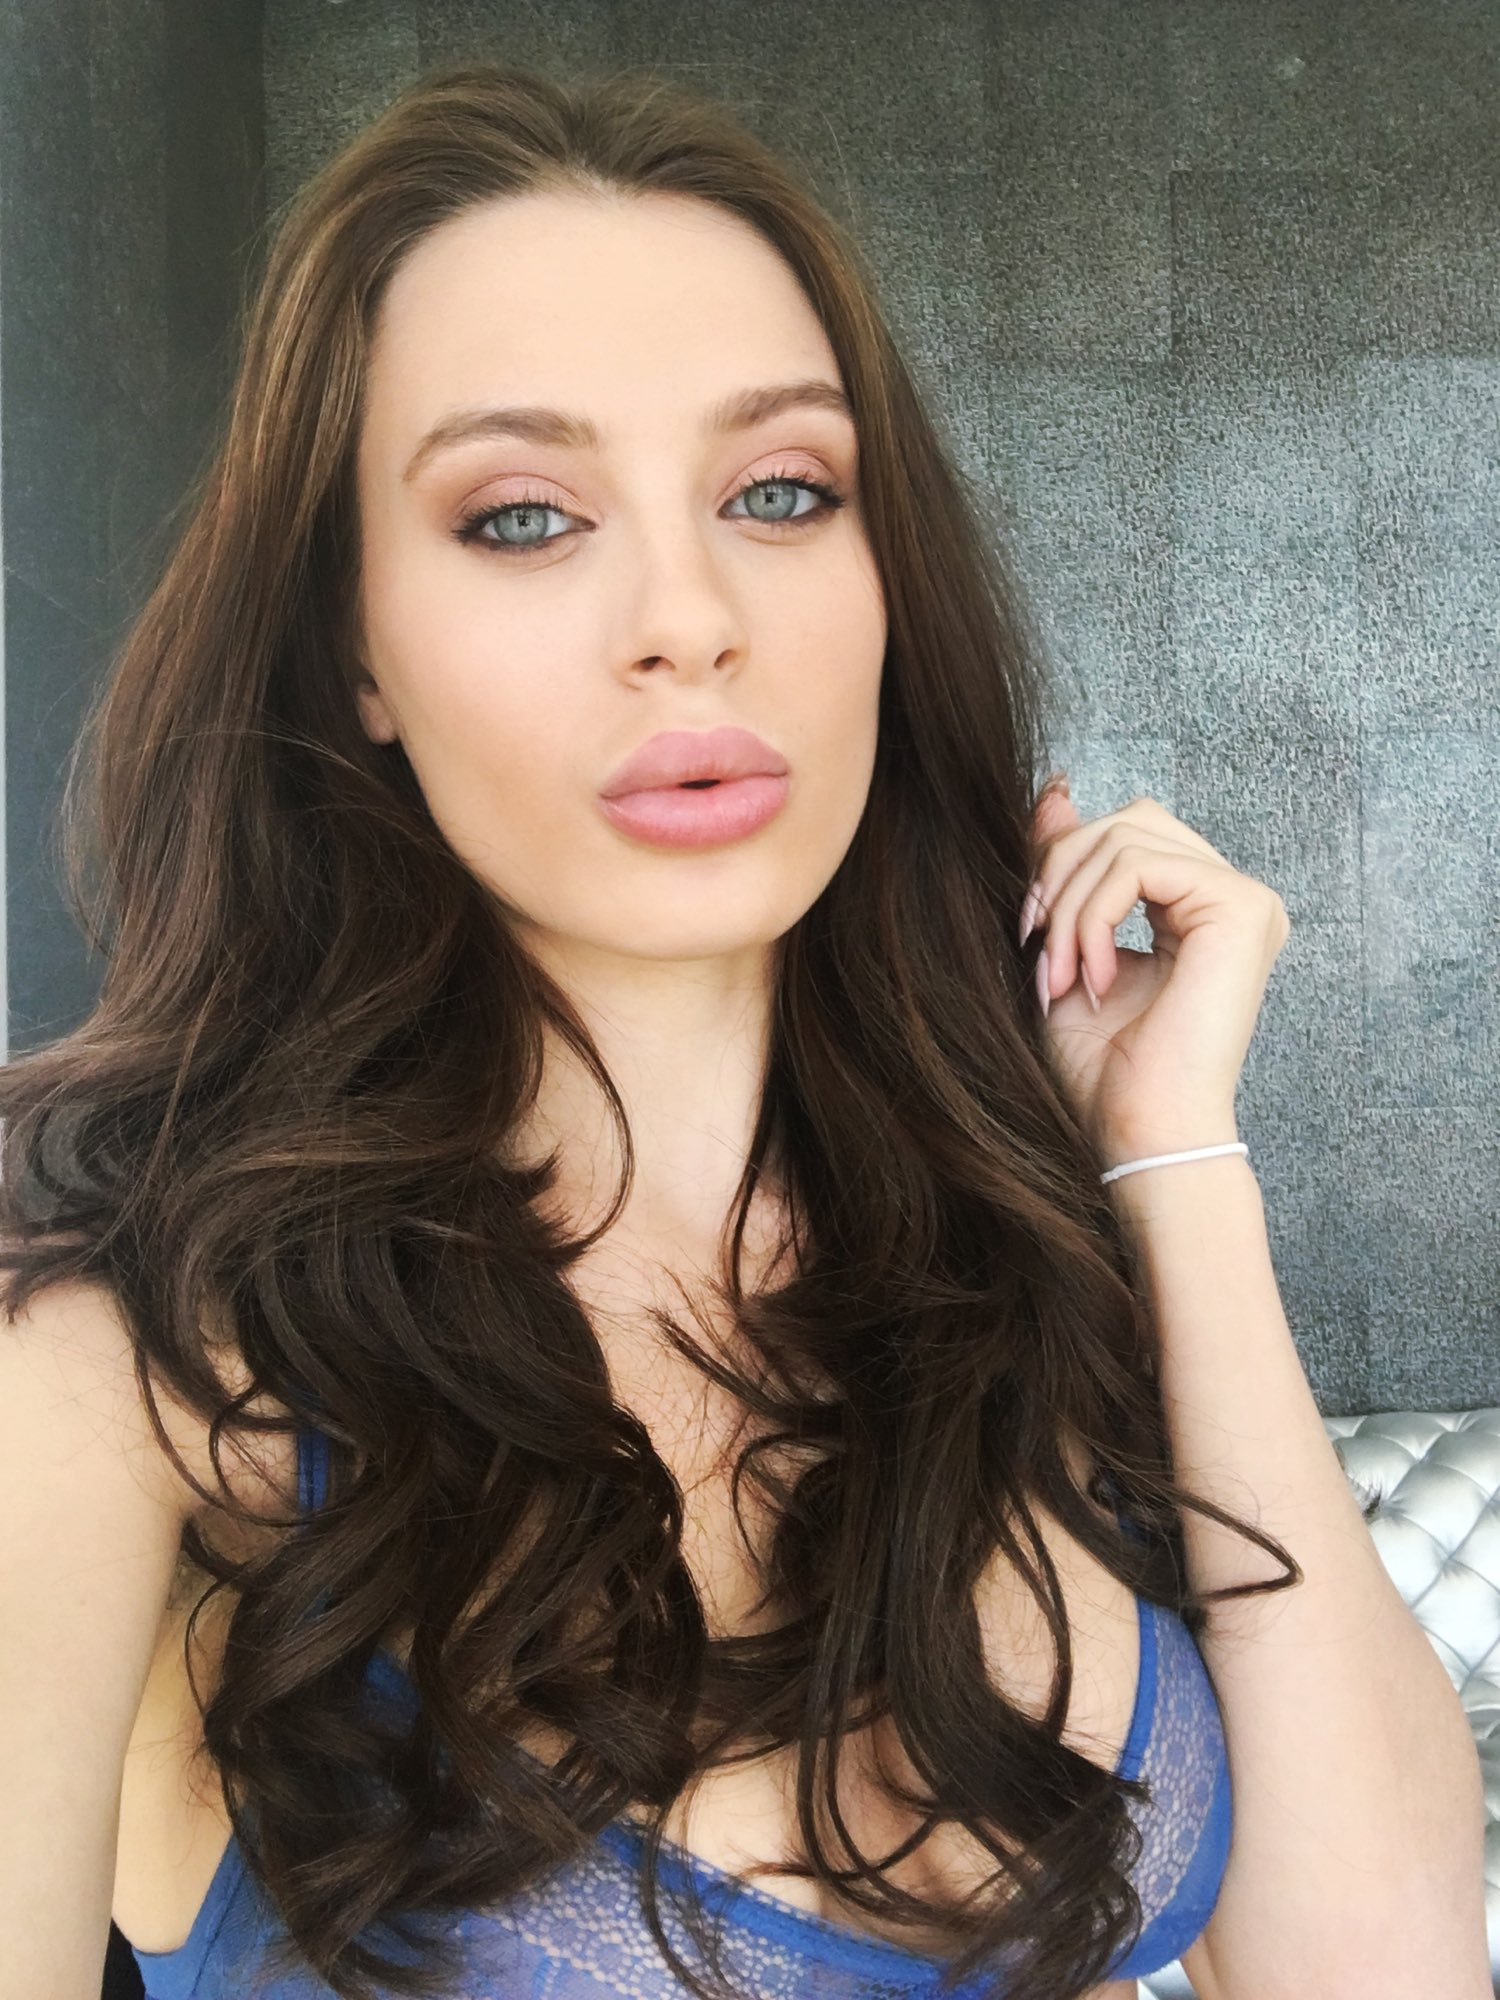 Lana rhoades 19 year old